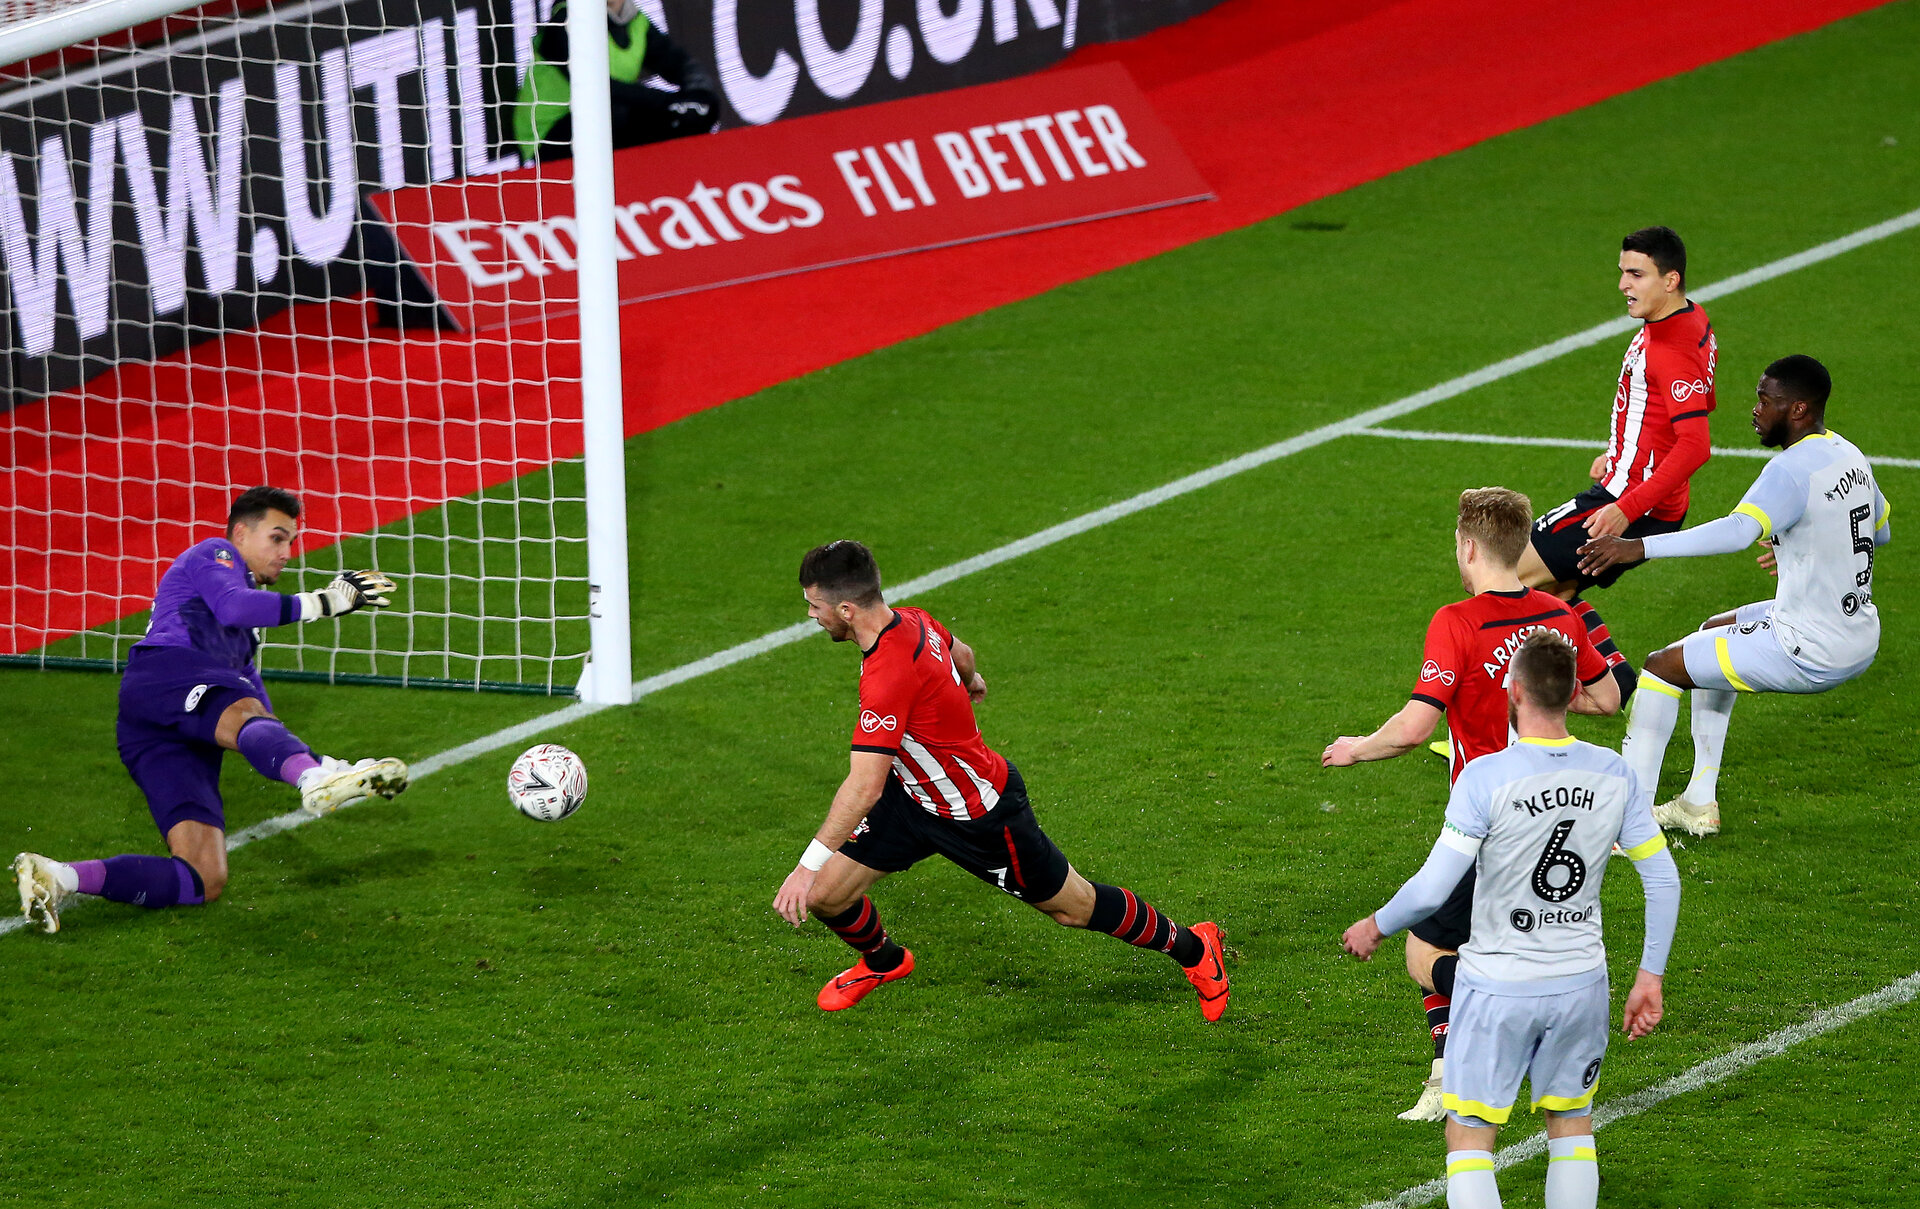 SOUTHAMPTON, ENGLAND - JANUARY 16: Shane Long of Southampton is denied by Derby goalkeeper Kelle Roos during the FA Cup Third Round Replay match between Southampton FC and Derby County at St Mary's Stadium on January 16, 2019 in Southampton, United Kingdom. (Photo by Matt Watson/Southampton FC via Getty Images)